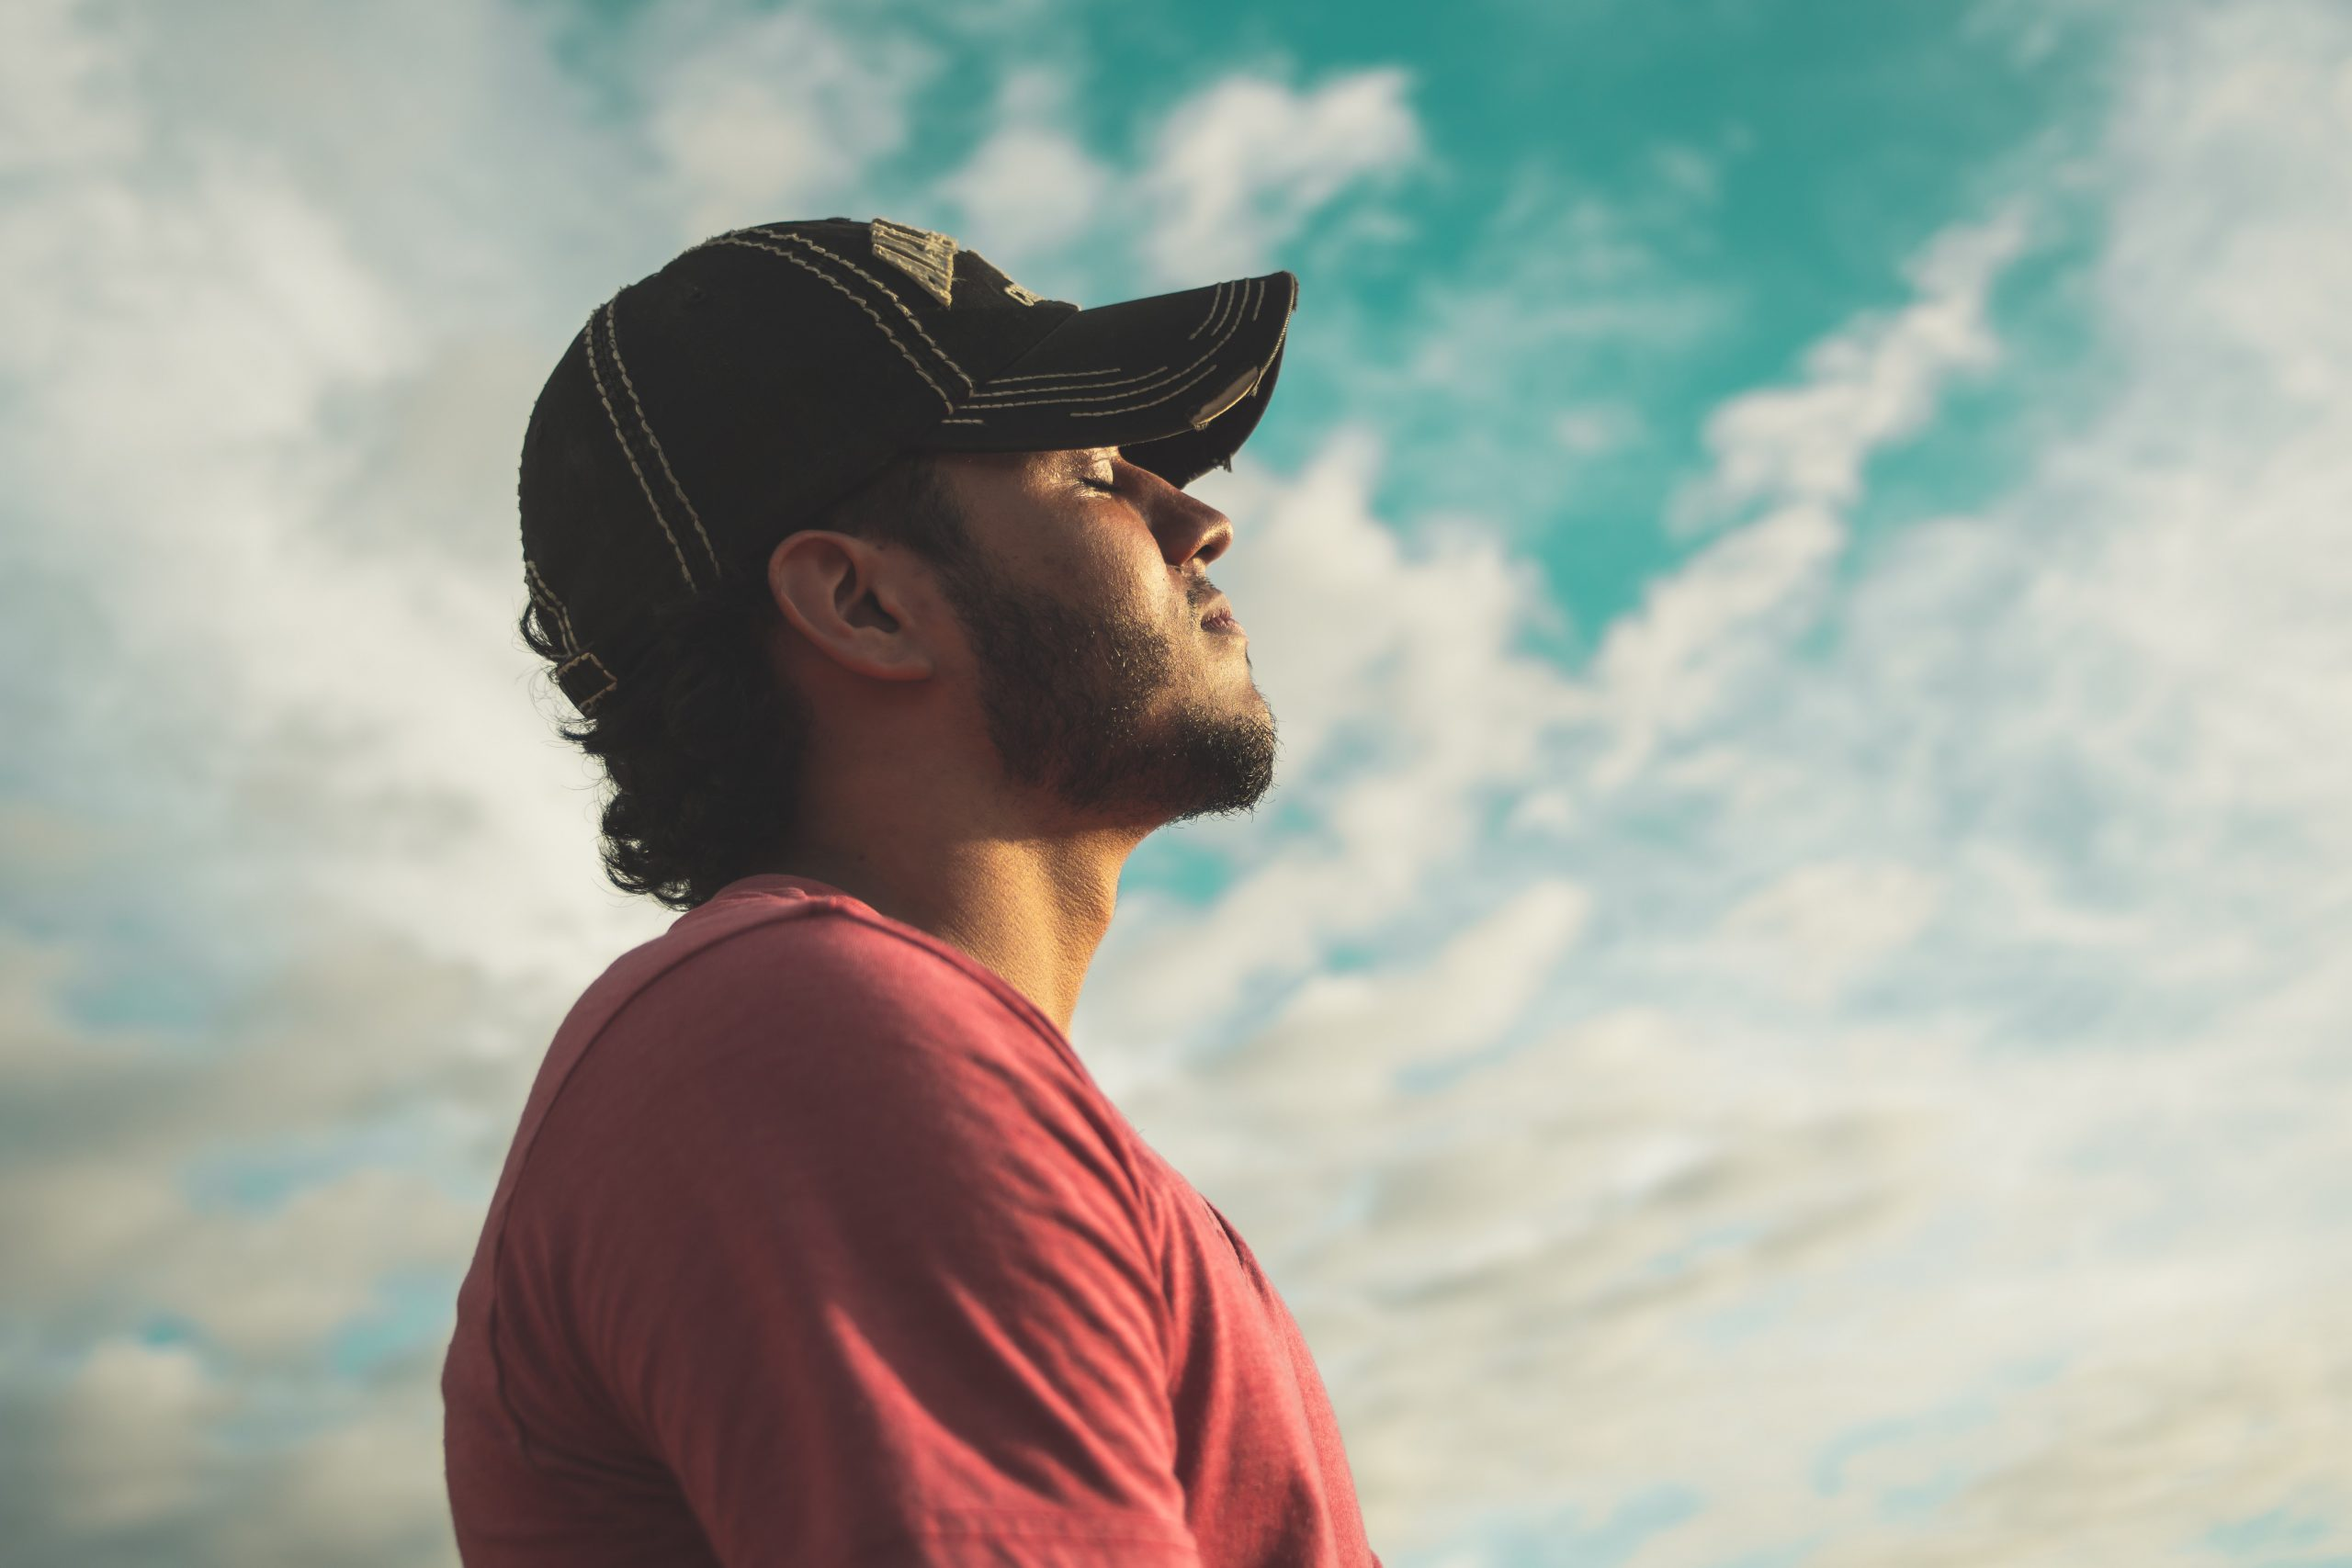 man wearing a red shirt and black cap facing the sky with his eyes closed, coping strategies, healthy coping mechanisms